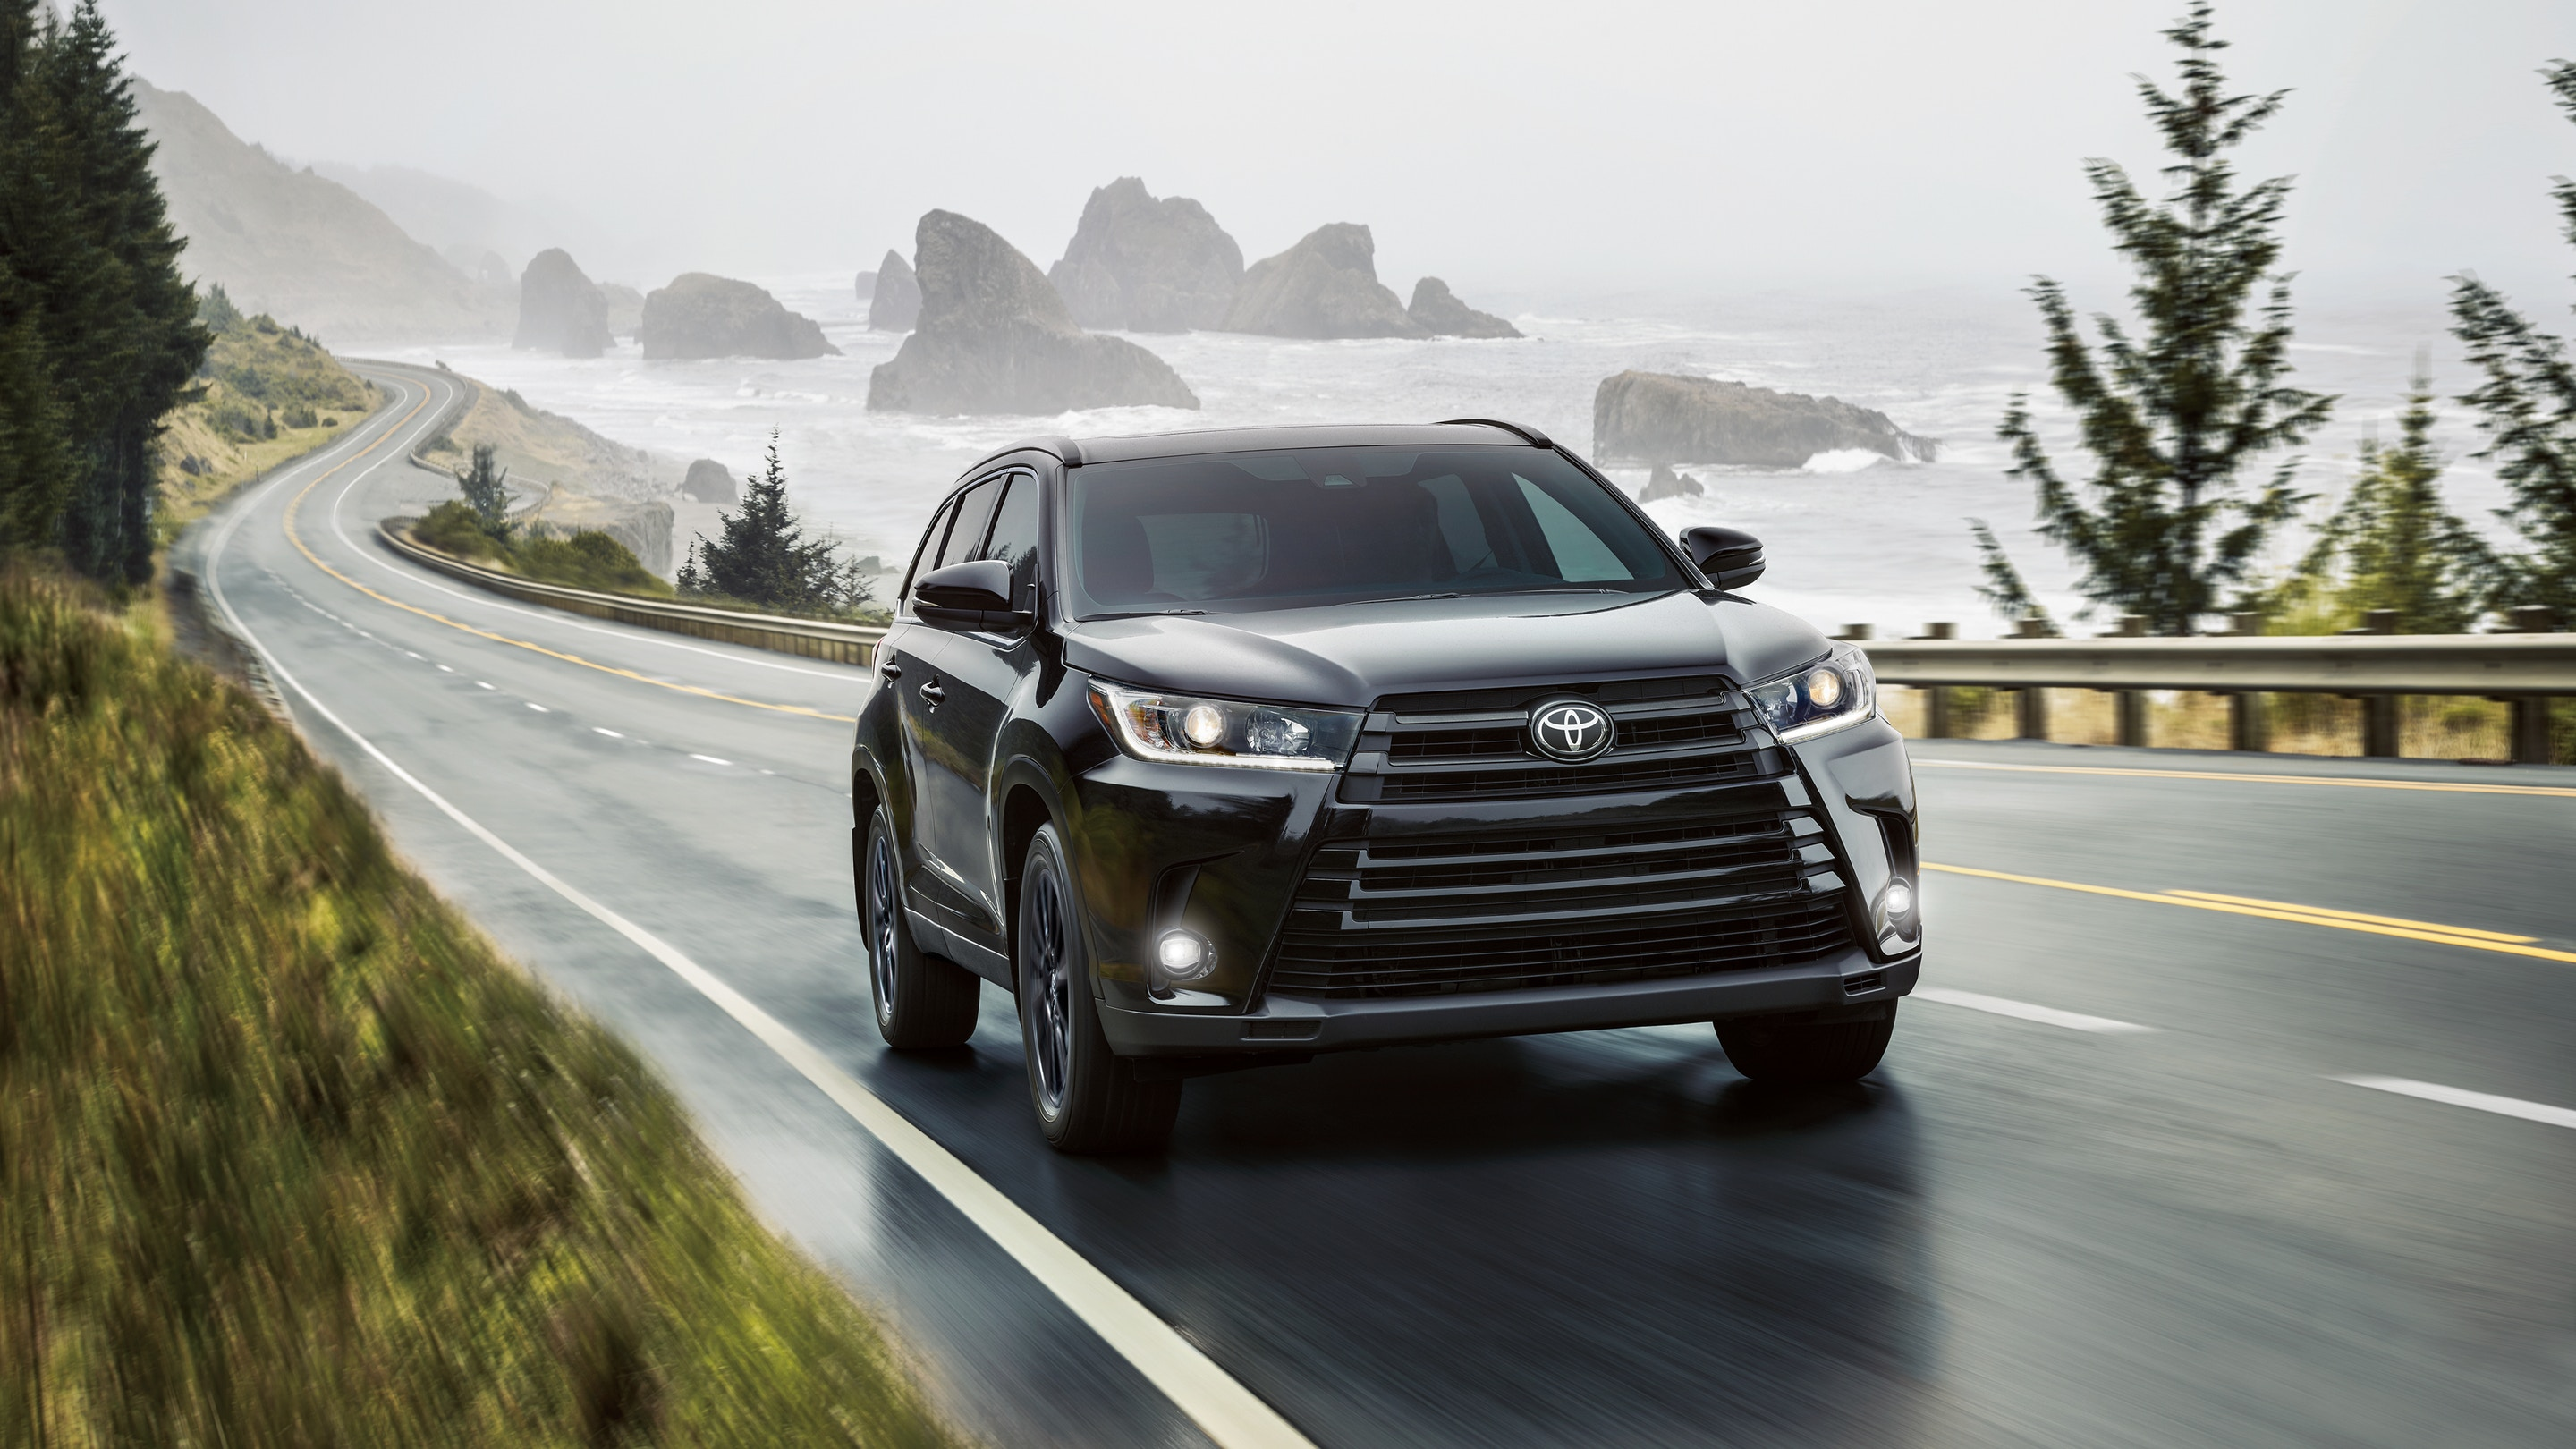 2019 Toyota Highlander vs 2019 Jeep Grand Cherokee near Independence, MO, 64015